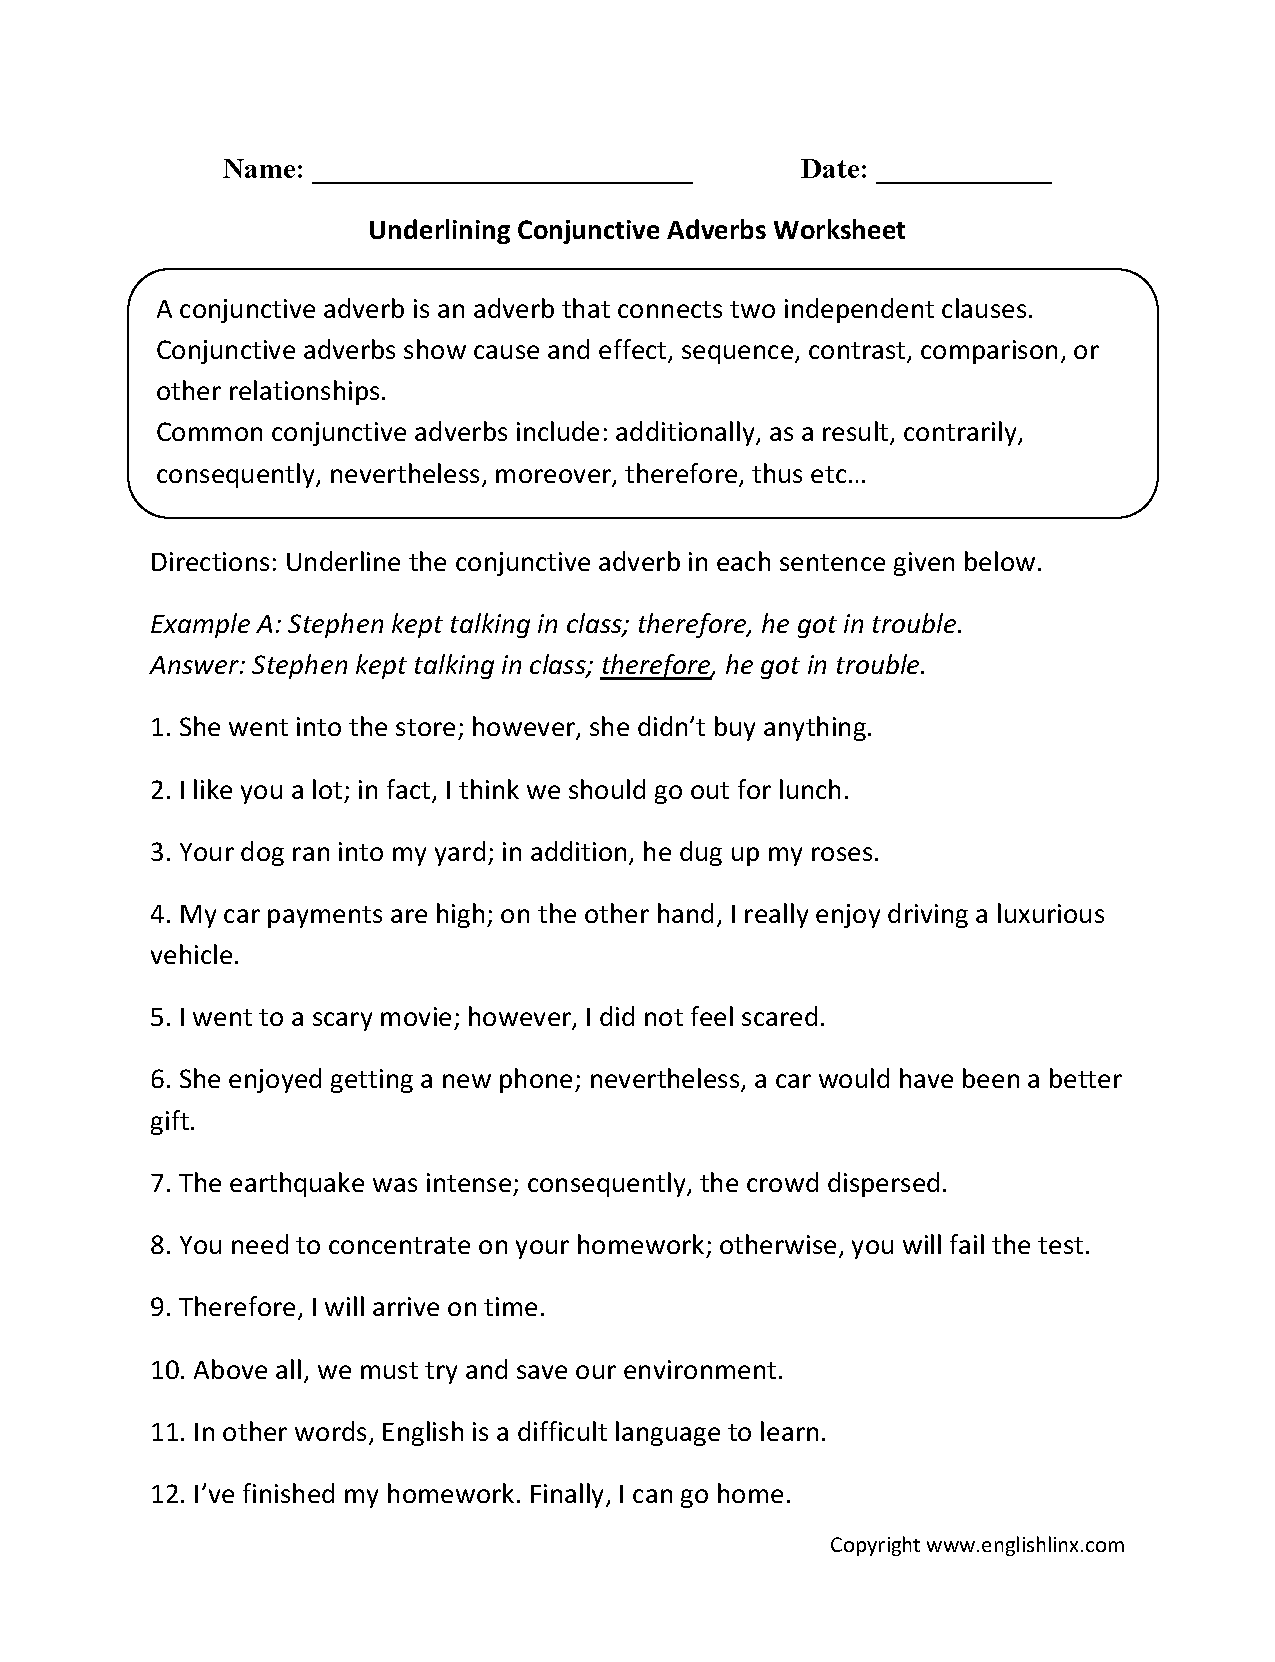 Weirdmailus  Marvellous Englishlinxcom  Conjunctions Worksheets With Inspiring Worksheet With Nice Electron Shells Worksheet Also Ending Consonant Worksheets In Addition Verbs Worksheets Grade  And Kids Math Worksheets Nd Grade As Well As Free Printable English Worksheets For Grade  Additionally Five Sense Worksheets From Englishlinxcom With Weirdmailus  Inspiring Englishlinxcom  Conjunctions Worksheets With Nice Worksheet And Marvellous Electron Shells Worksheet Also Ending Consonant Worksheets In Addition Verbs Worksheets Grade  From Englishlinxcom